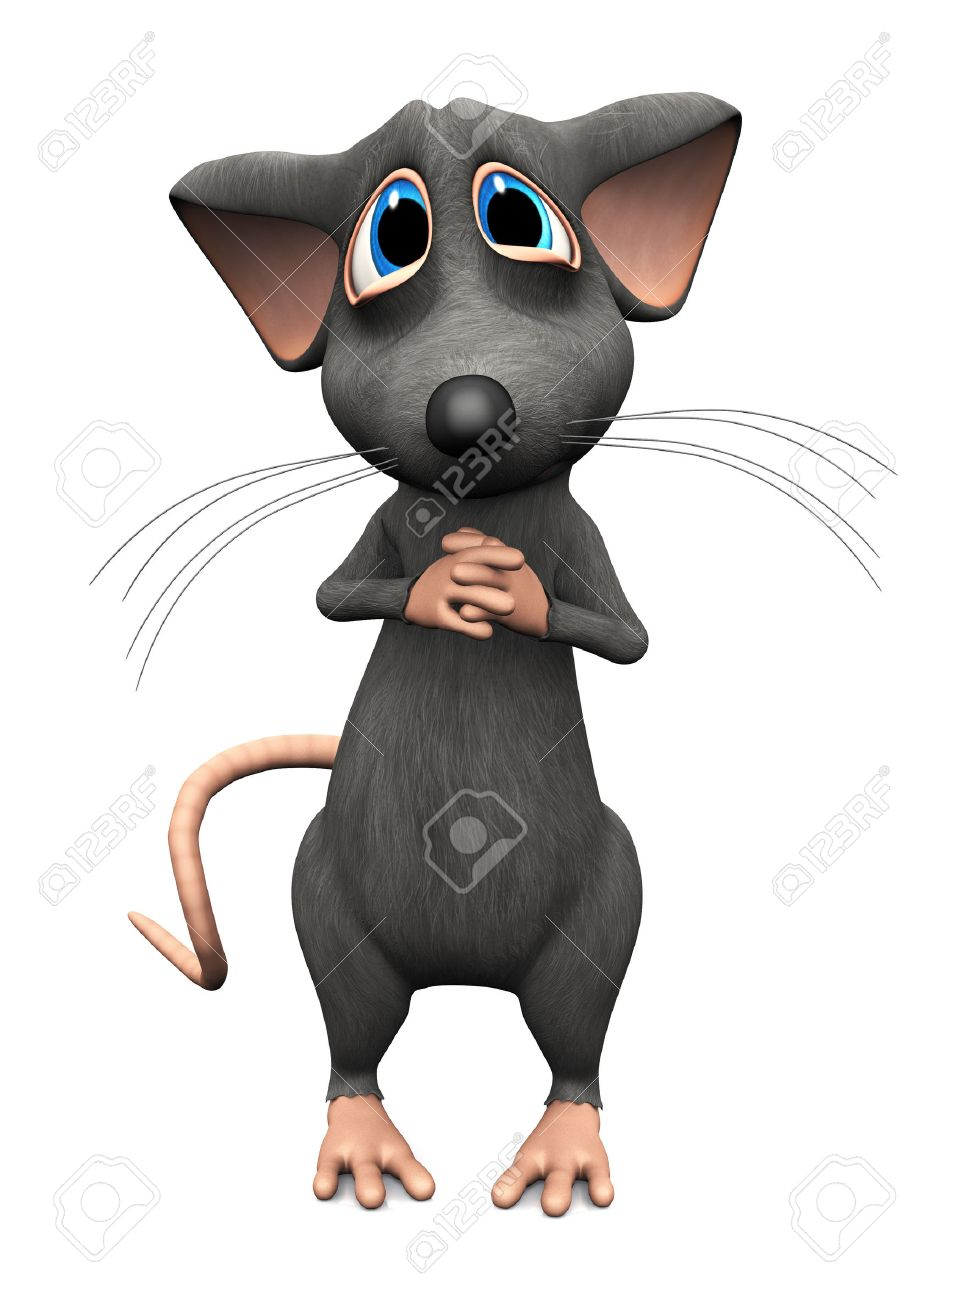 A cute upset cartoon mouse with very big sad eyes. White background. Stock Photo - 36053421